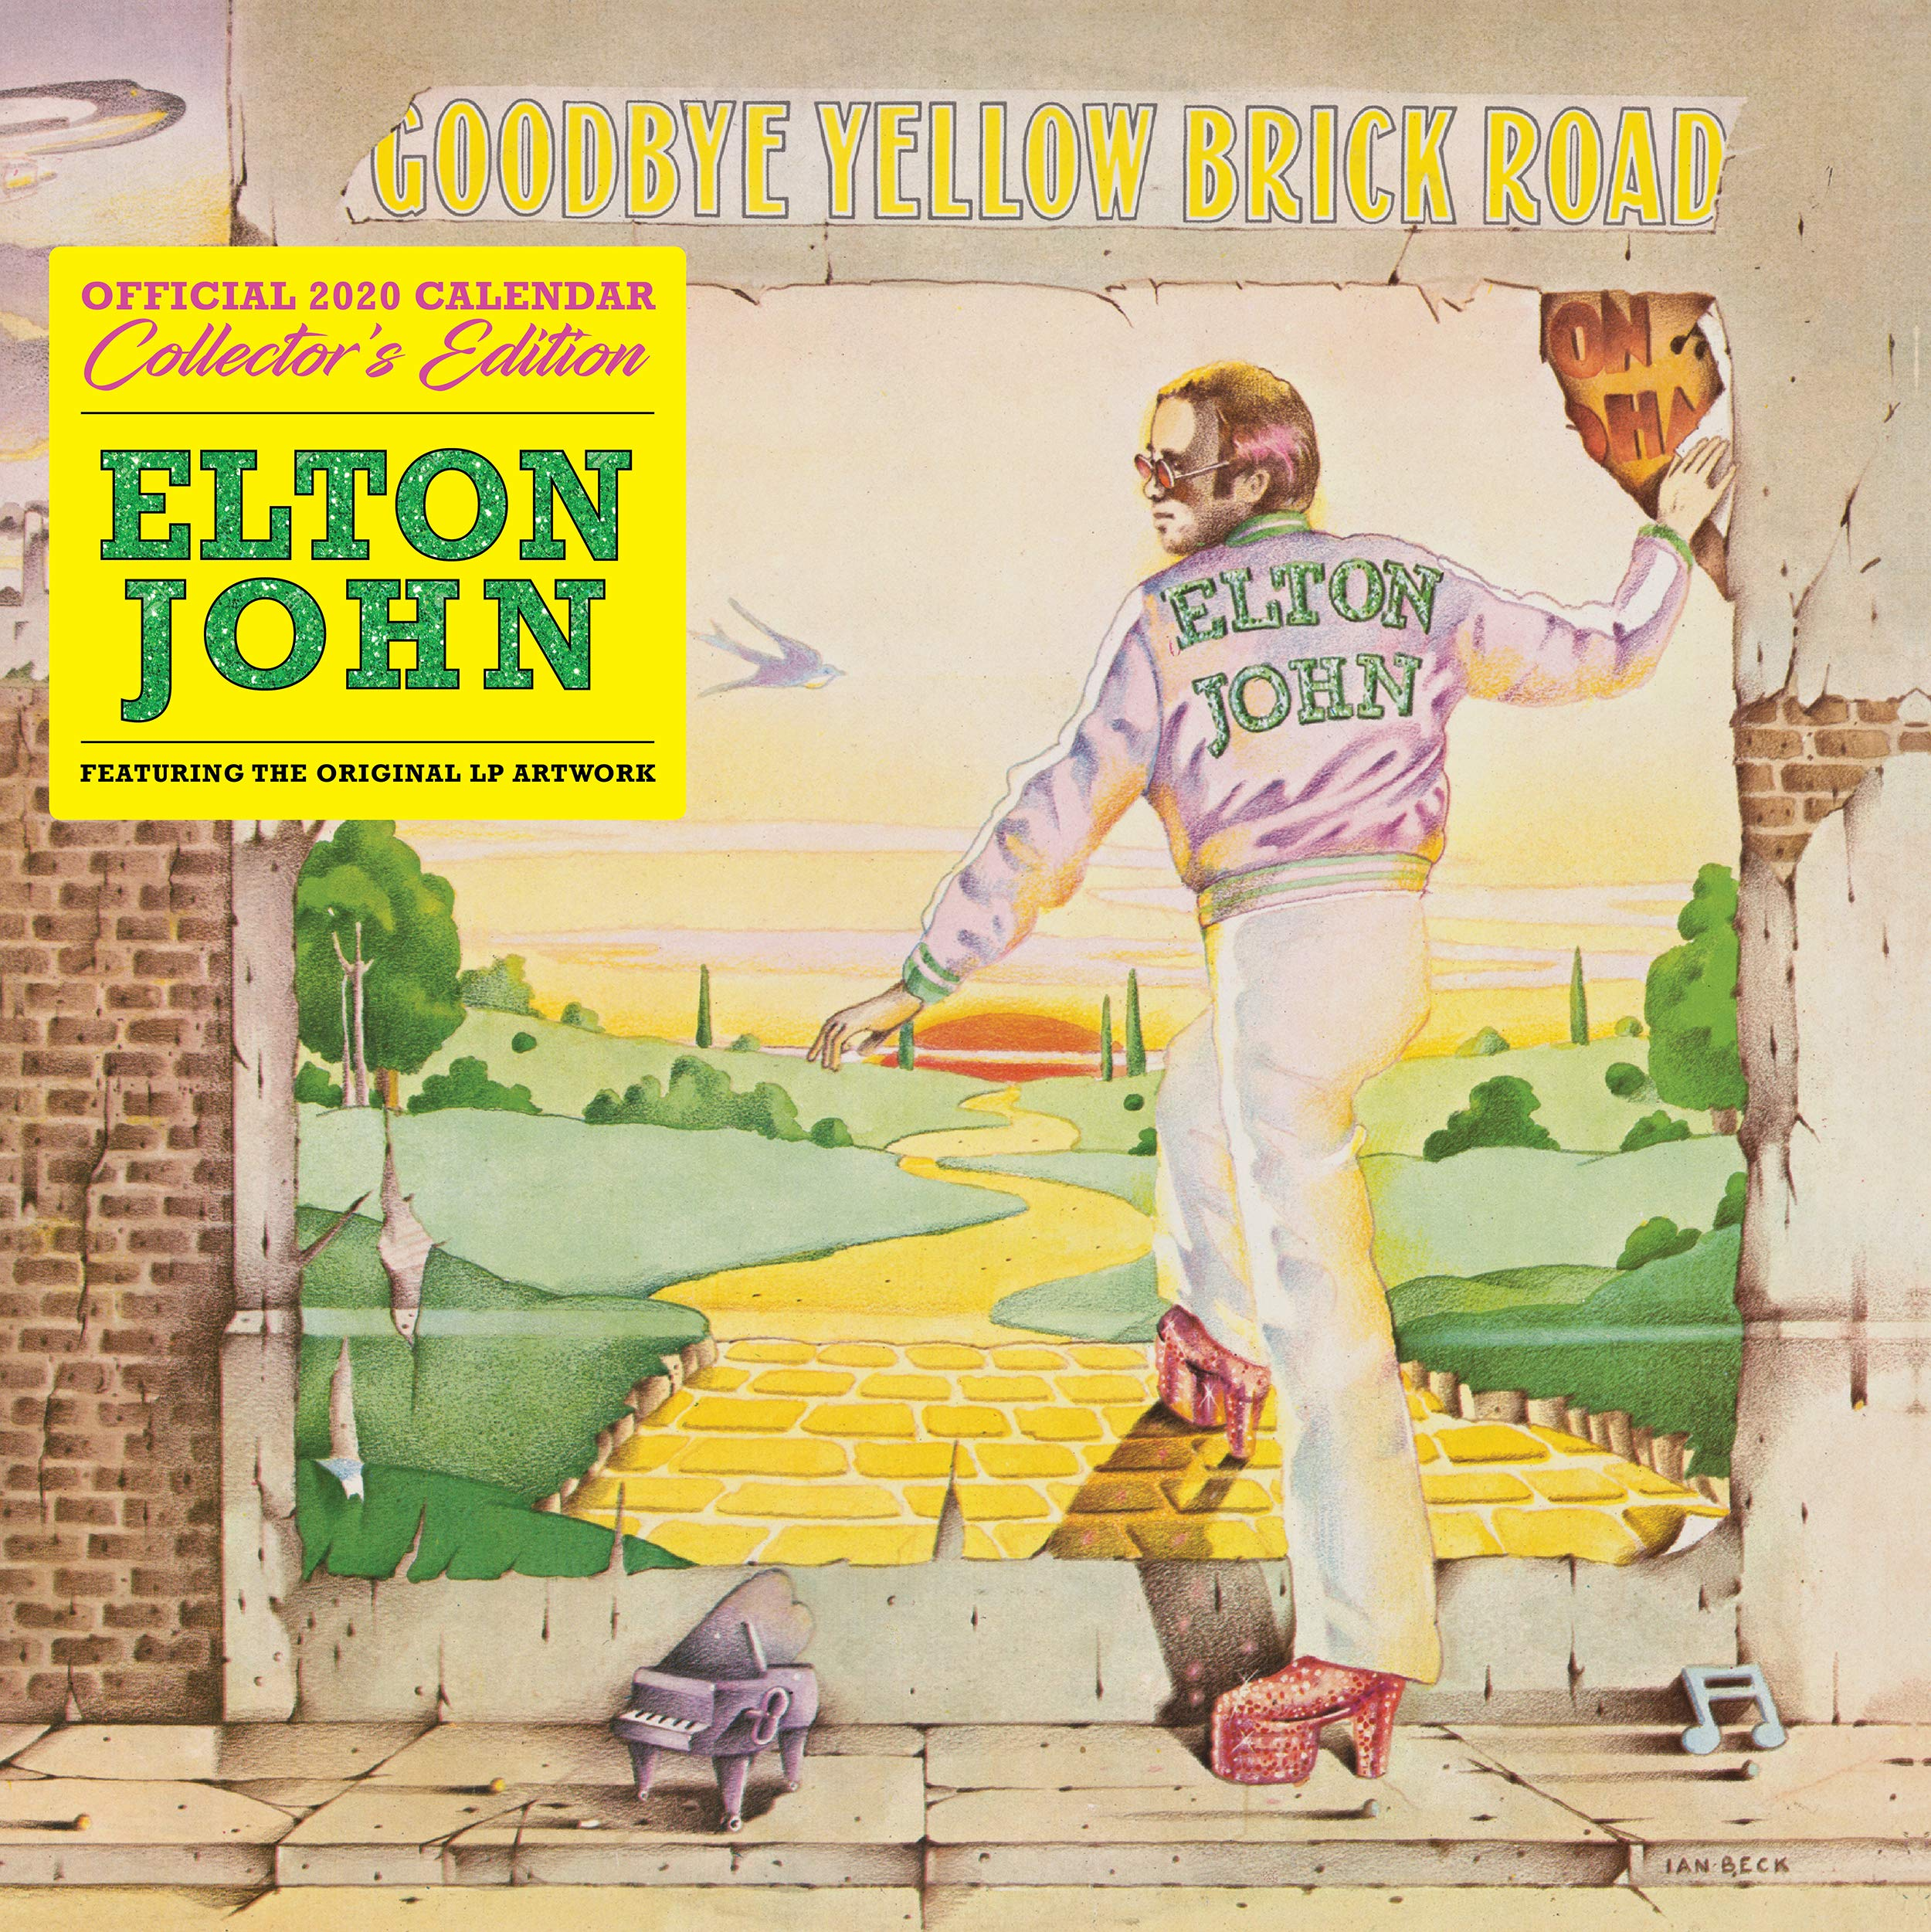 Elton John Collectors Edition 2020 Calendar   Official Square Wall Format Calendar With Record Sleeve Cover